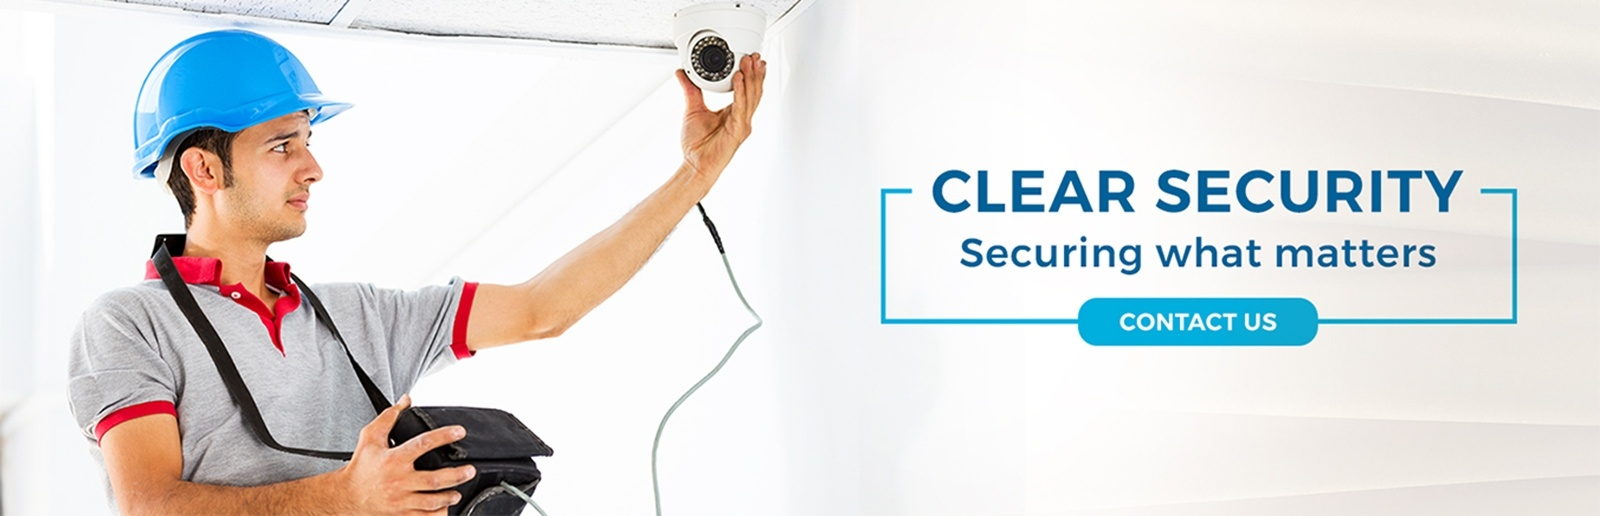 Security Camera Installer in Kamloops